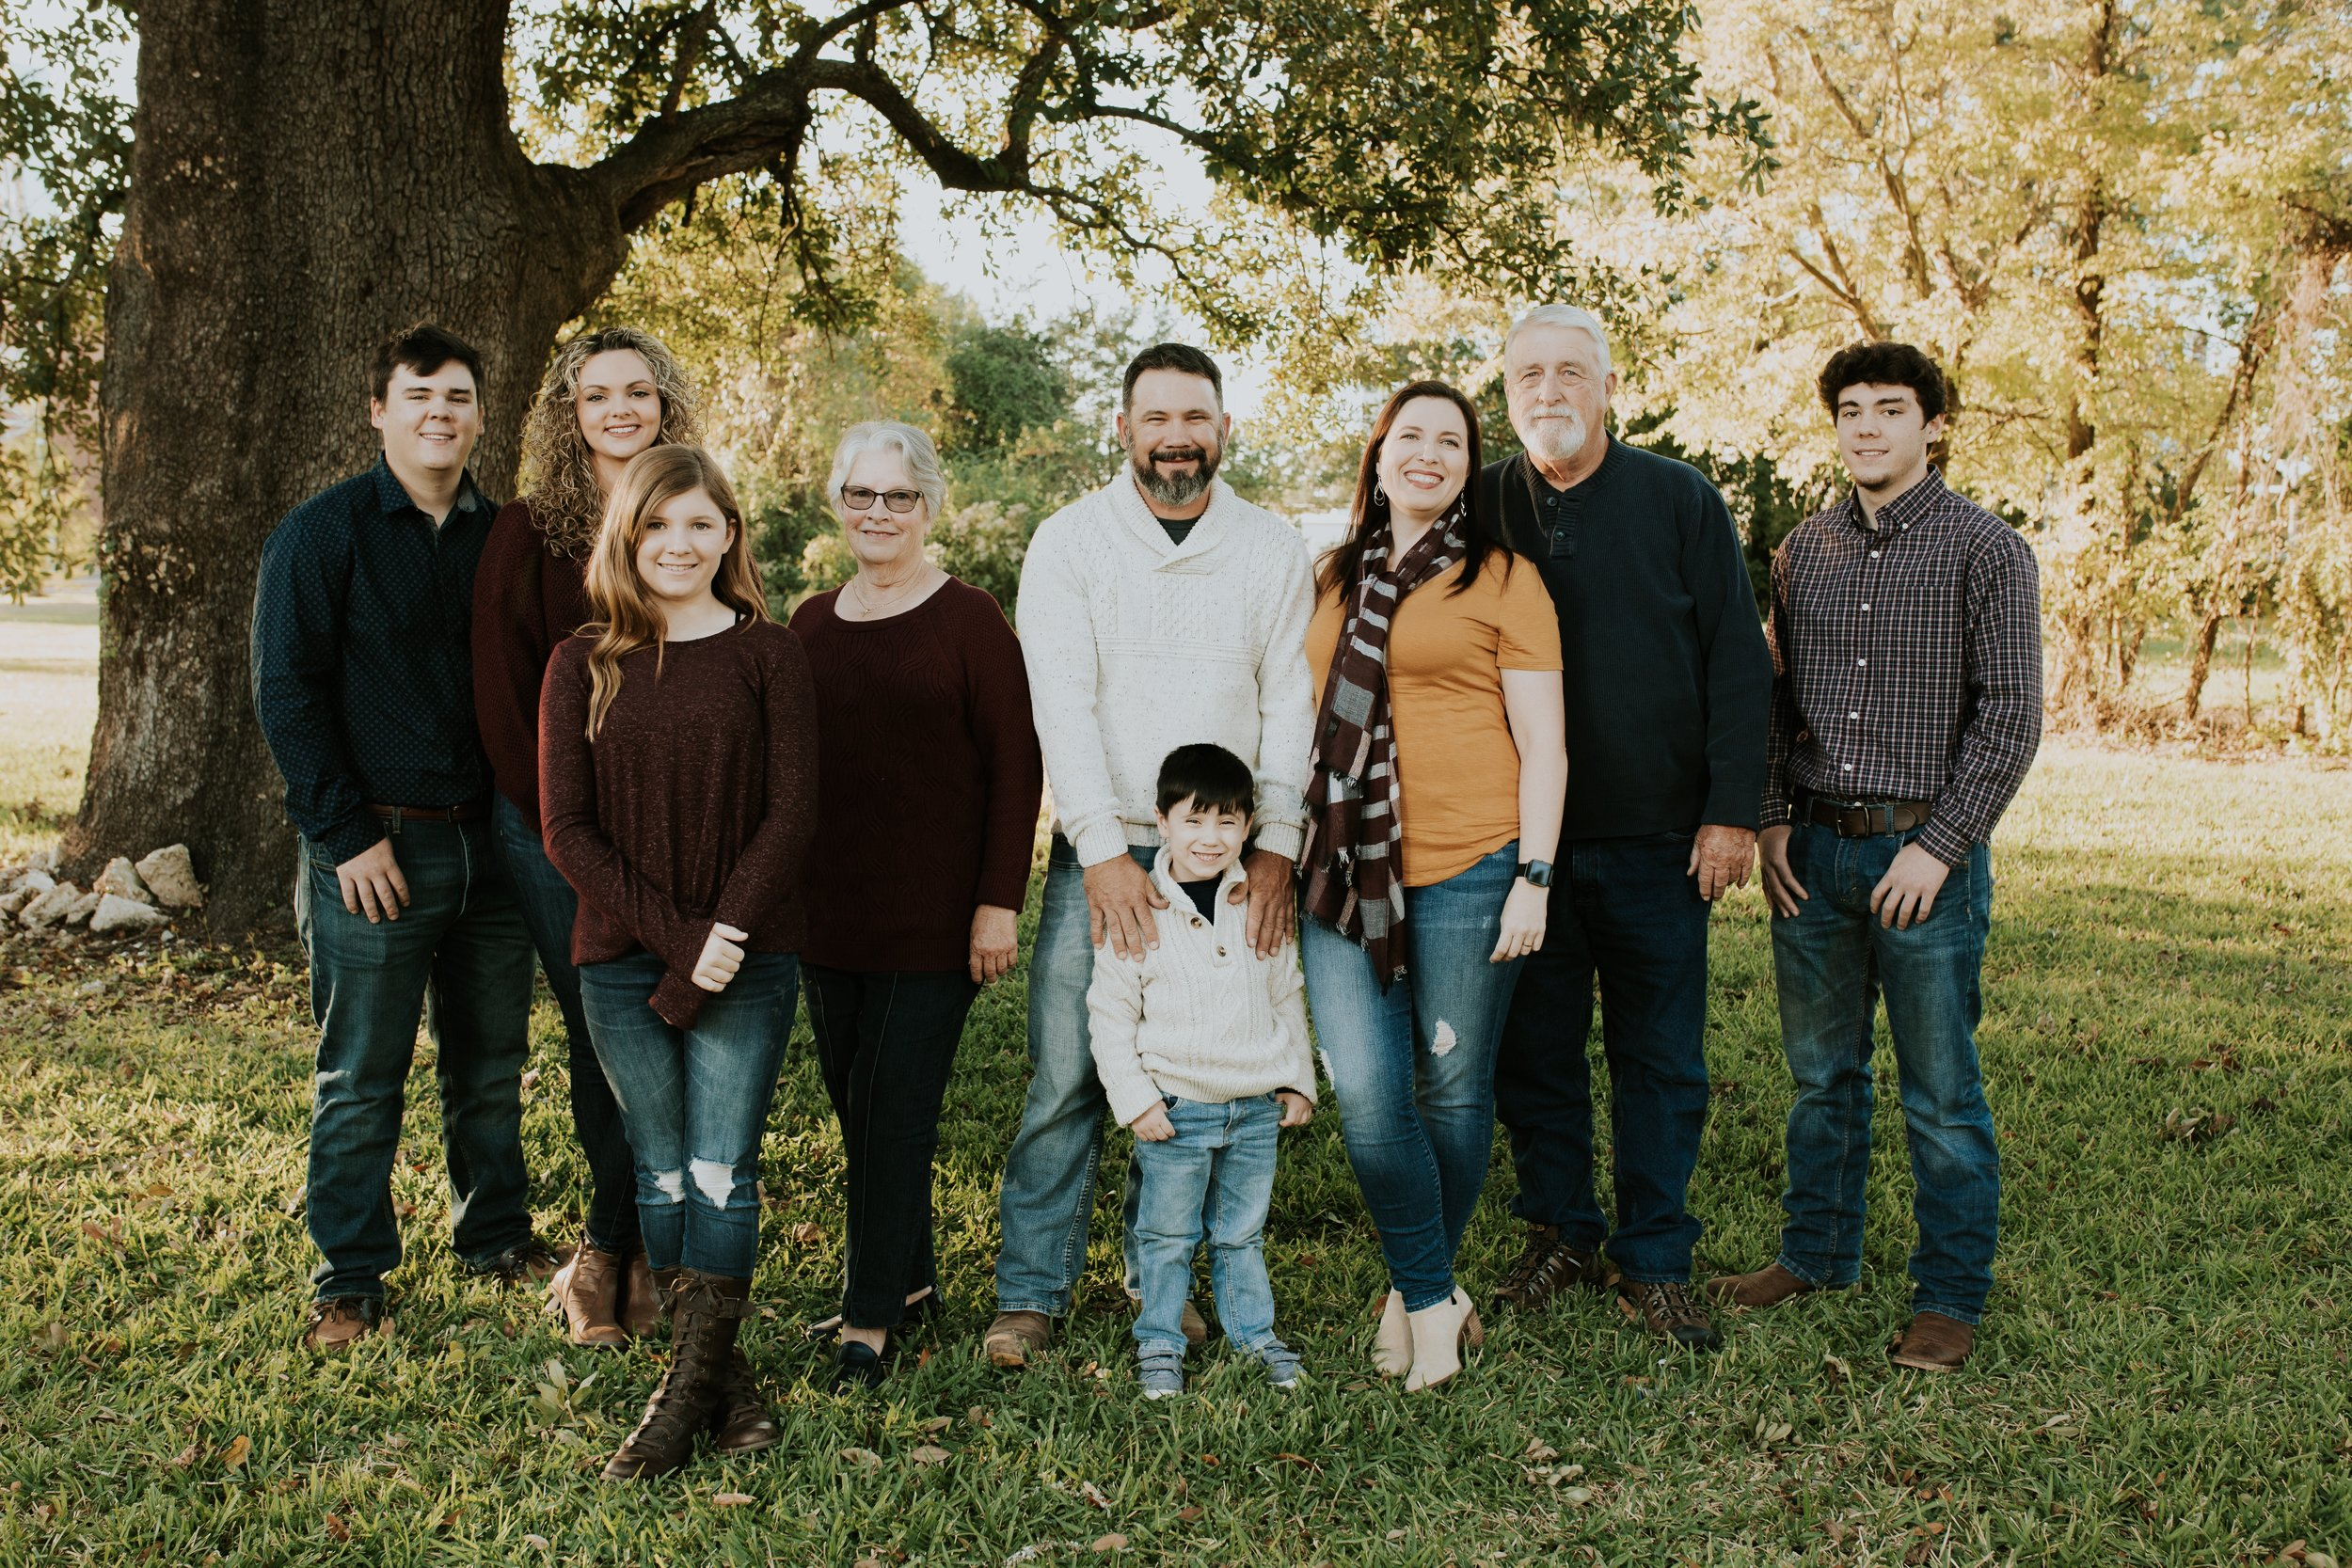 Family-Picture-Photographer-Lake-Charles